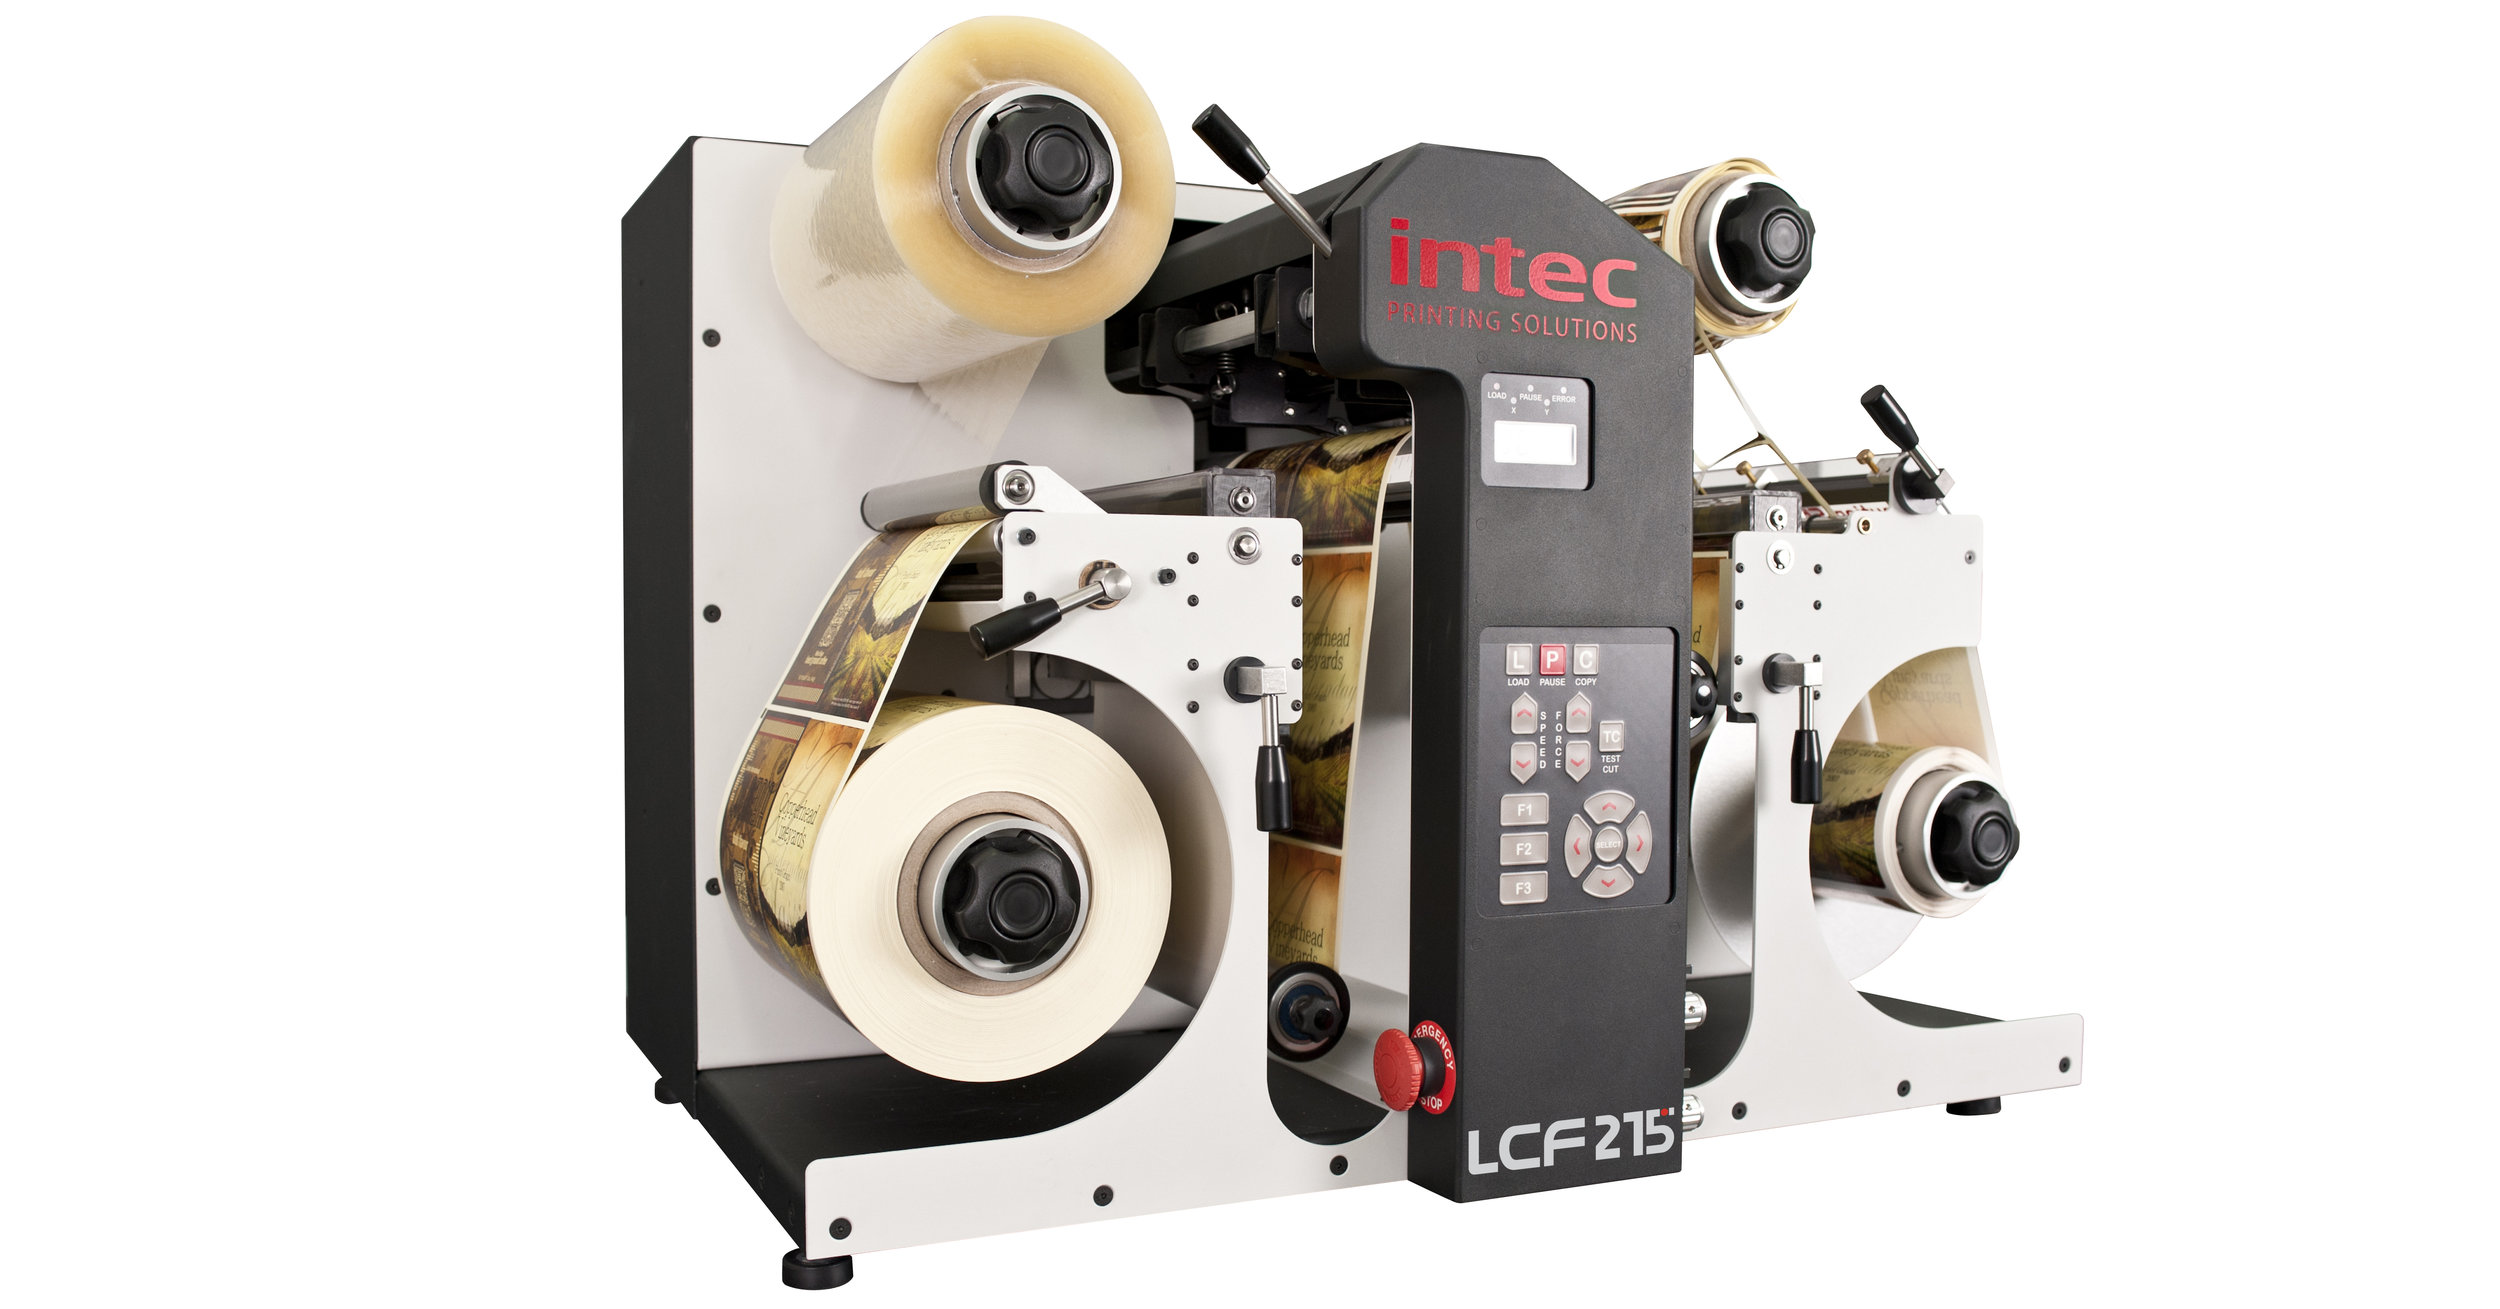 The fully specified LPS215 label printing and finishing solution includes everything your business needs to produce high quality labels with ease and efficiency. This superb system includes the LP215 label printer, LCF215 label finishing solution and the Intec RIP pod complete with PC workstation and all the software needed to produce on demand labels. The LP215 printer is the ideal solution for any business that requires high quality, short to medium run label production.